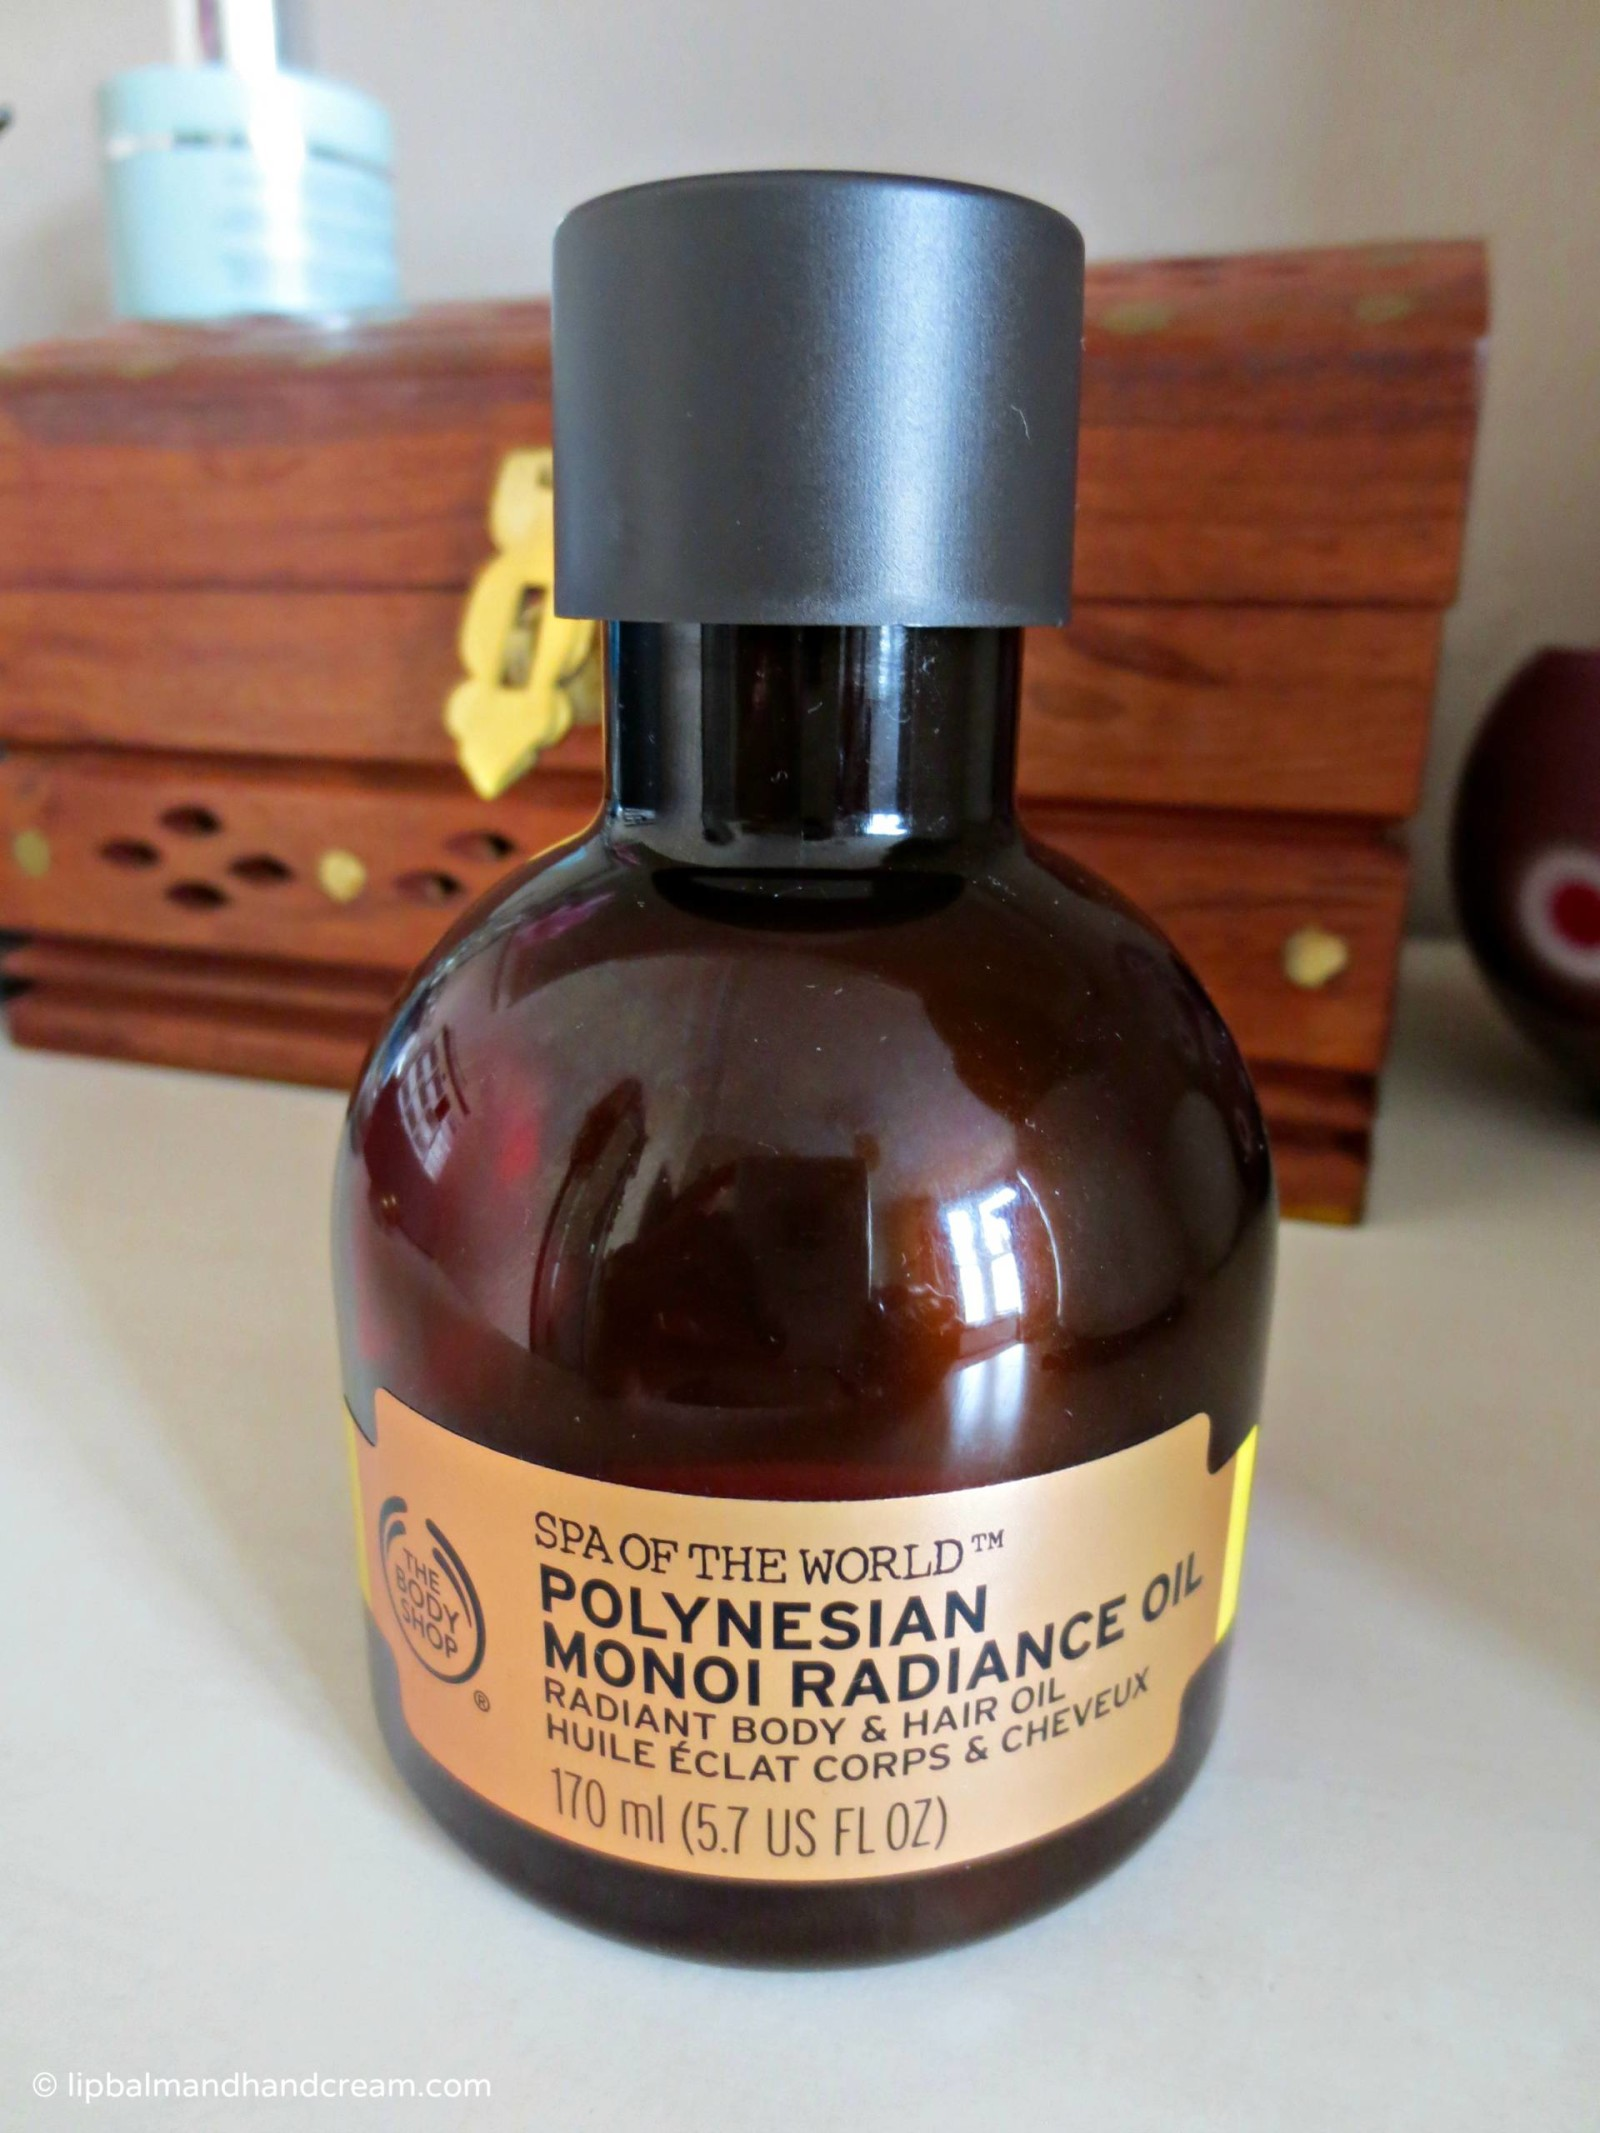 French Polynesia in London, with Body Shop's monoi radiance oil